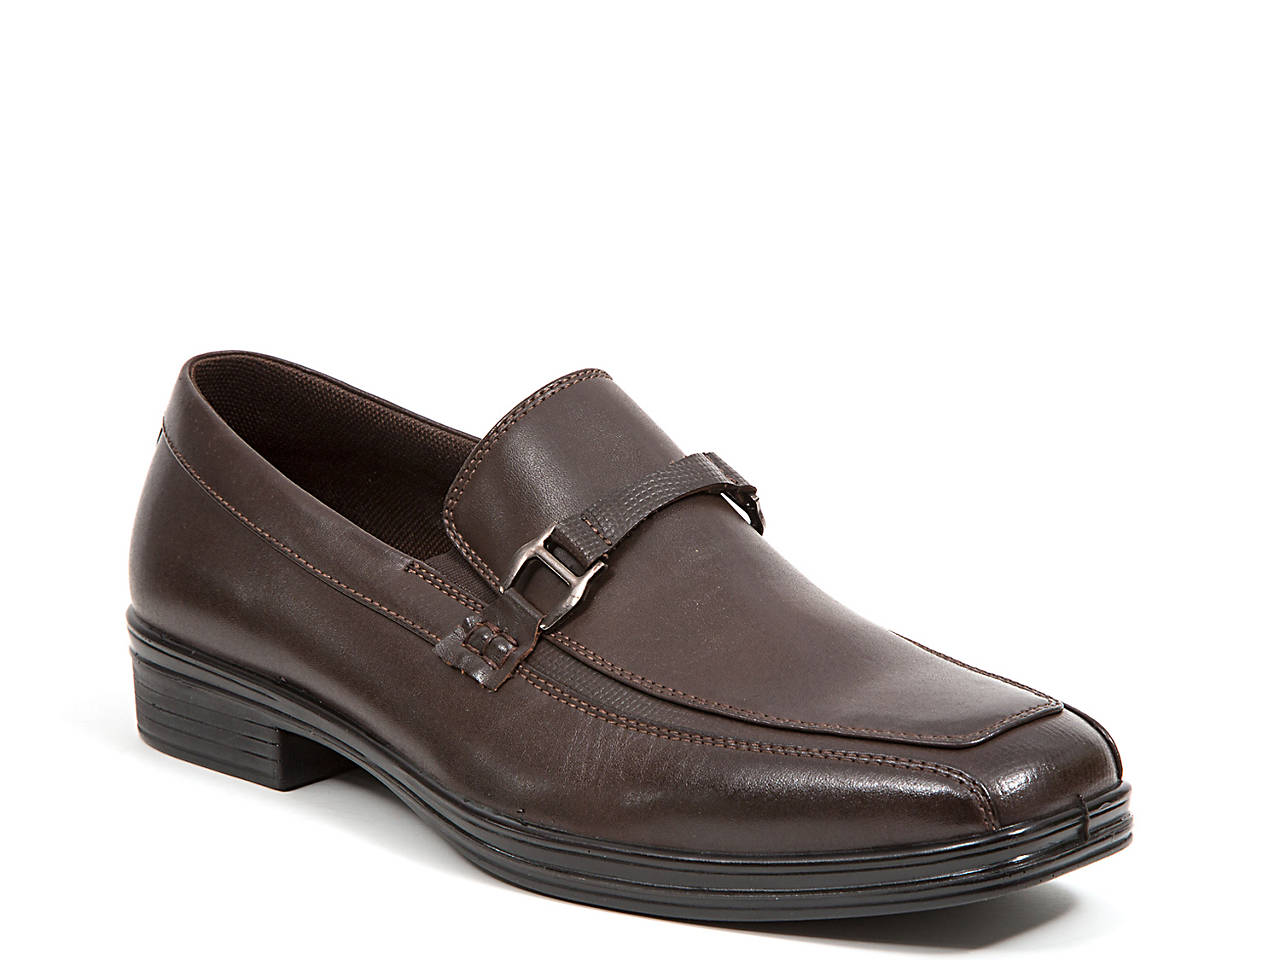 Cheap Big Discount Buy Cheap Shop For Deer Stags Colby Loafer Outlet Largest Supplier Inexpensive Sale Online yfkQe3NS